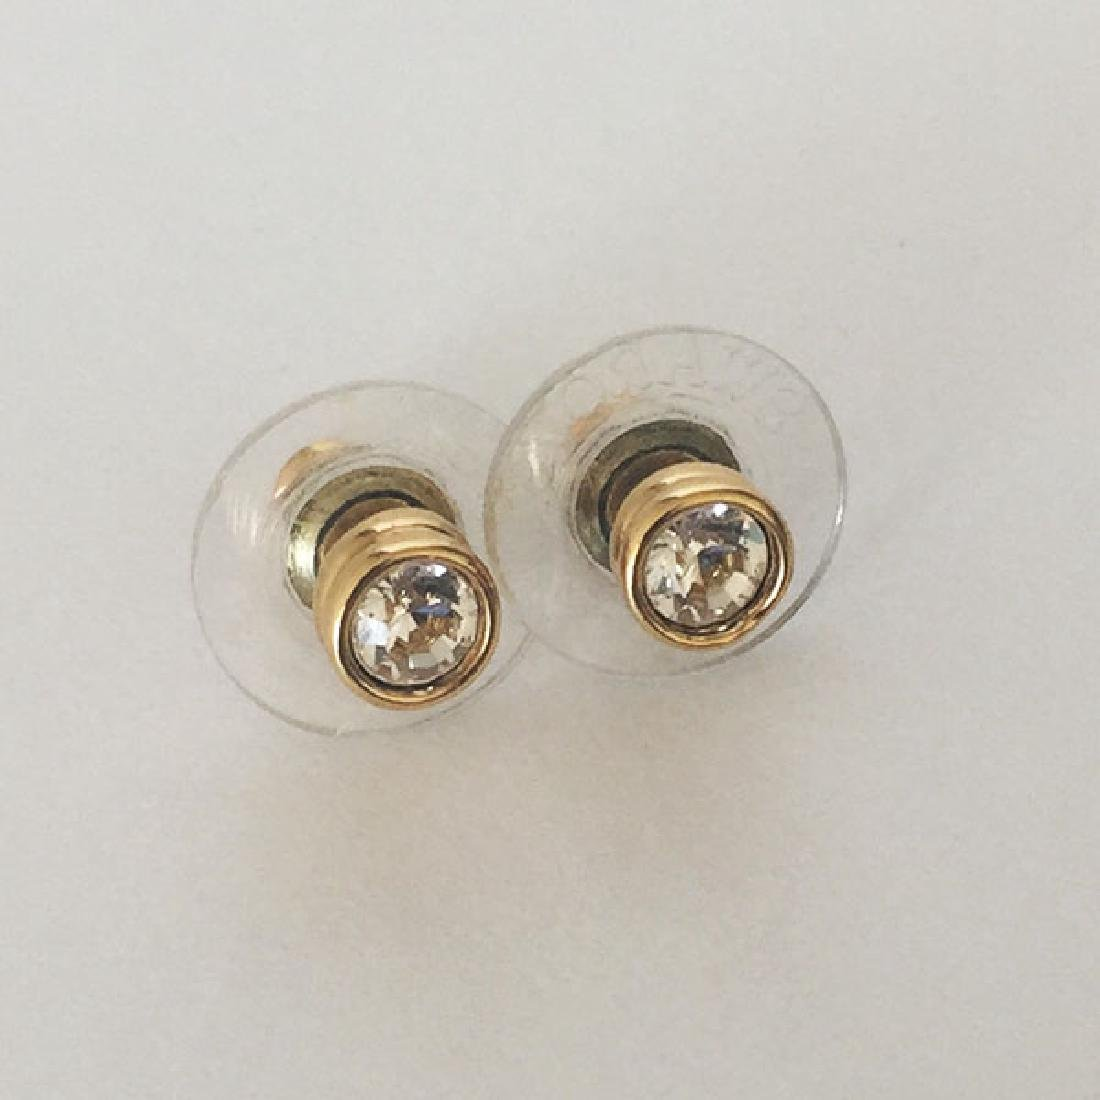 Gold plated post and push backs earrings with bezel set - 2